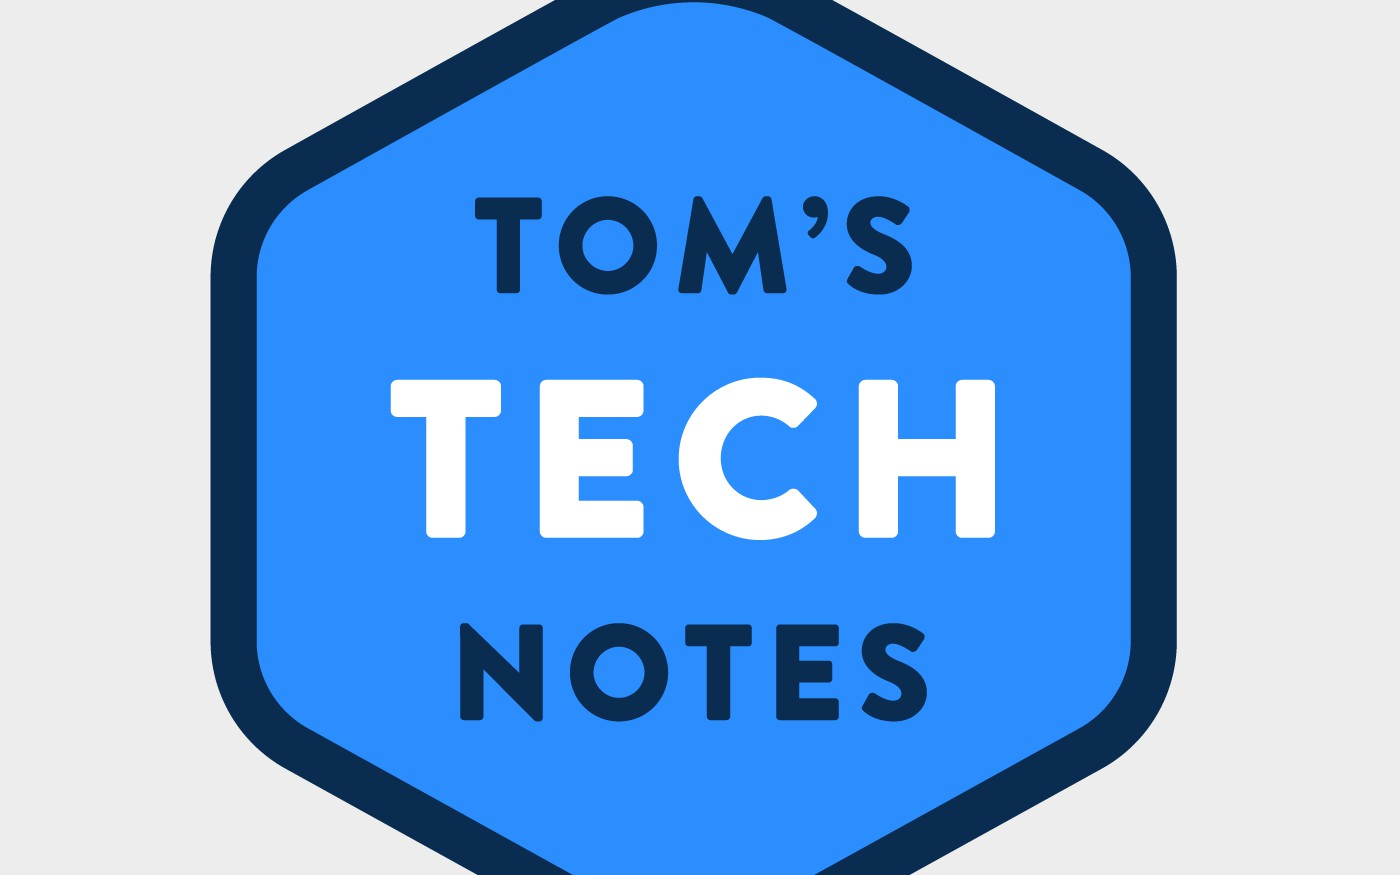 Tom's Tech Notes: The Future of Microservices [Podcast]